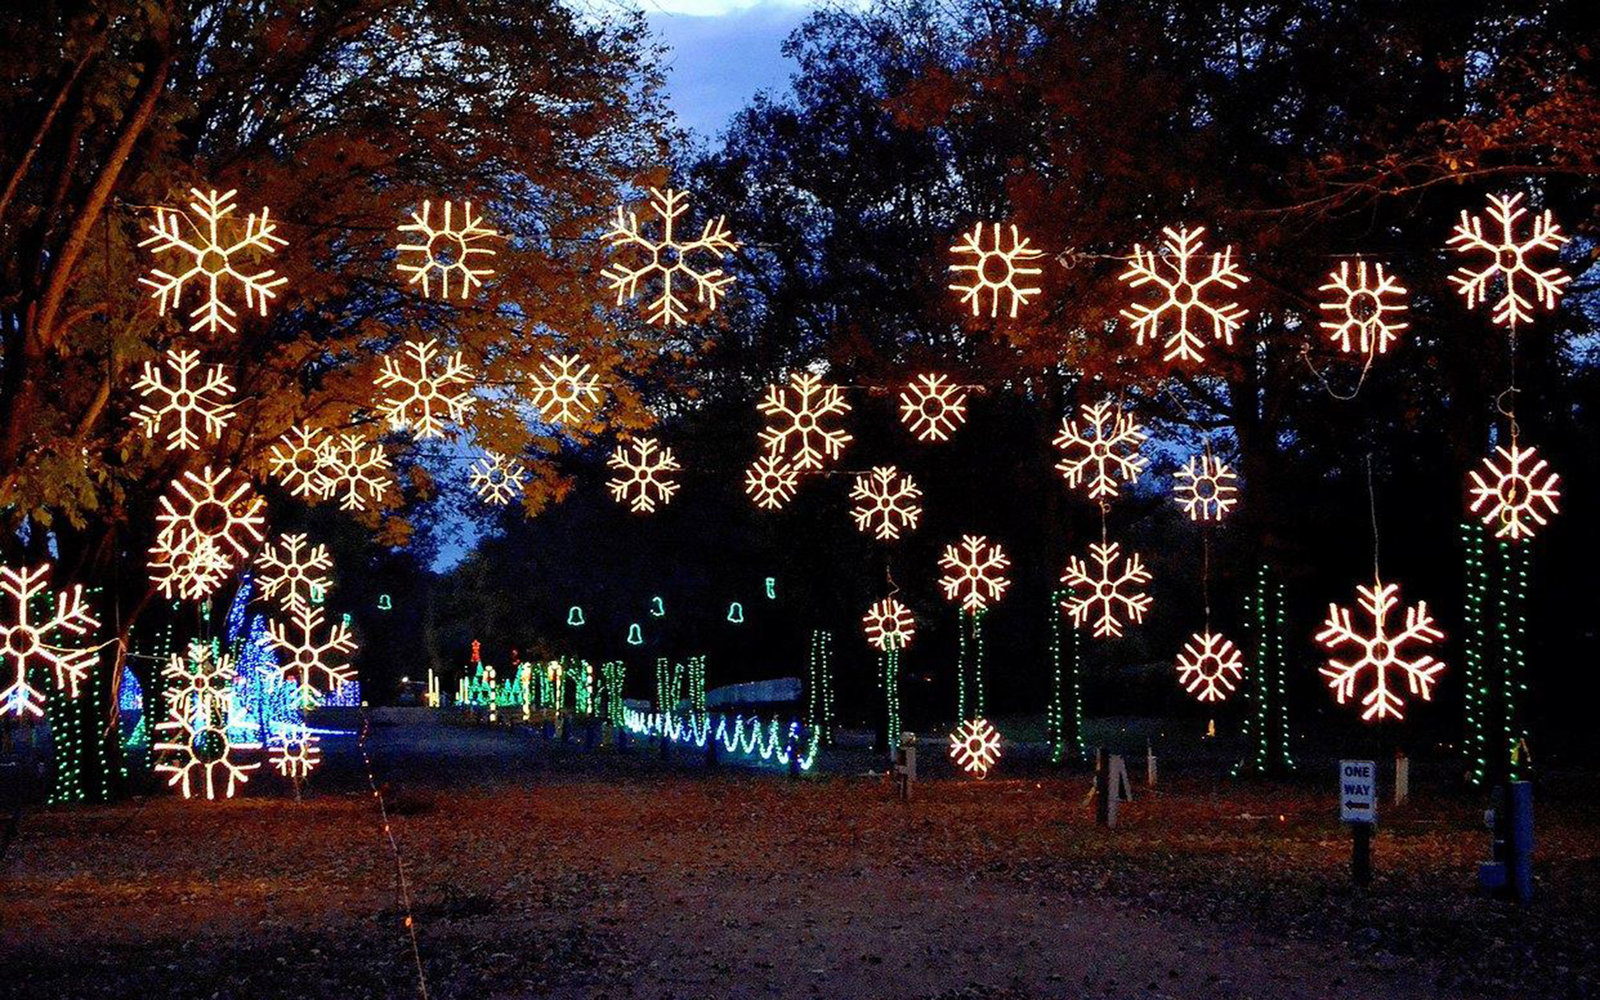 christmas in nashville christmas in nashville courtesy of jellystone park - Jellystone Park Nashville Christmas Lights